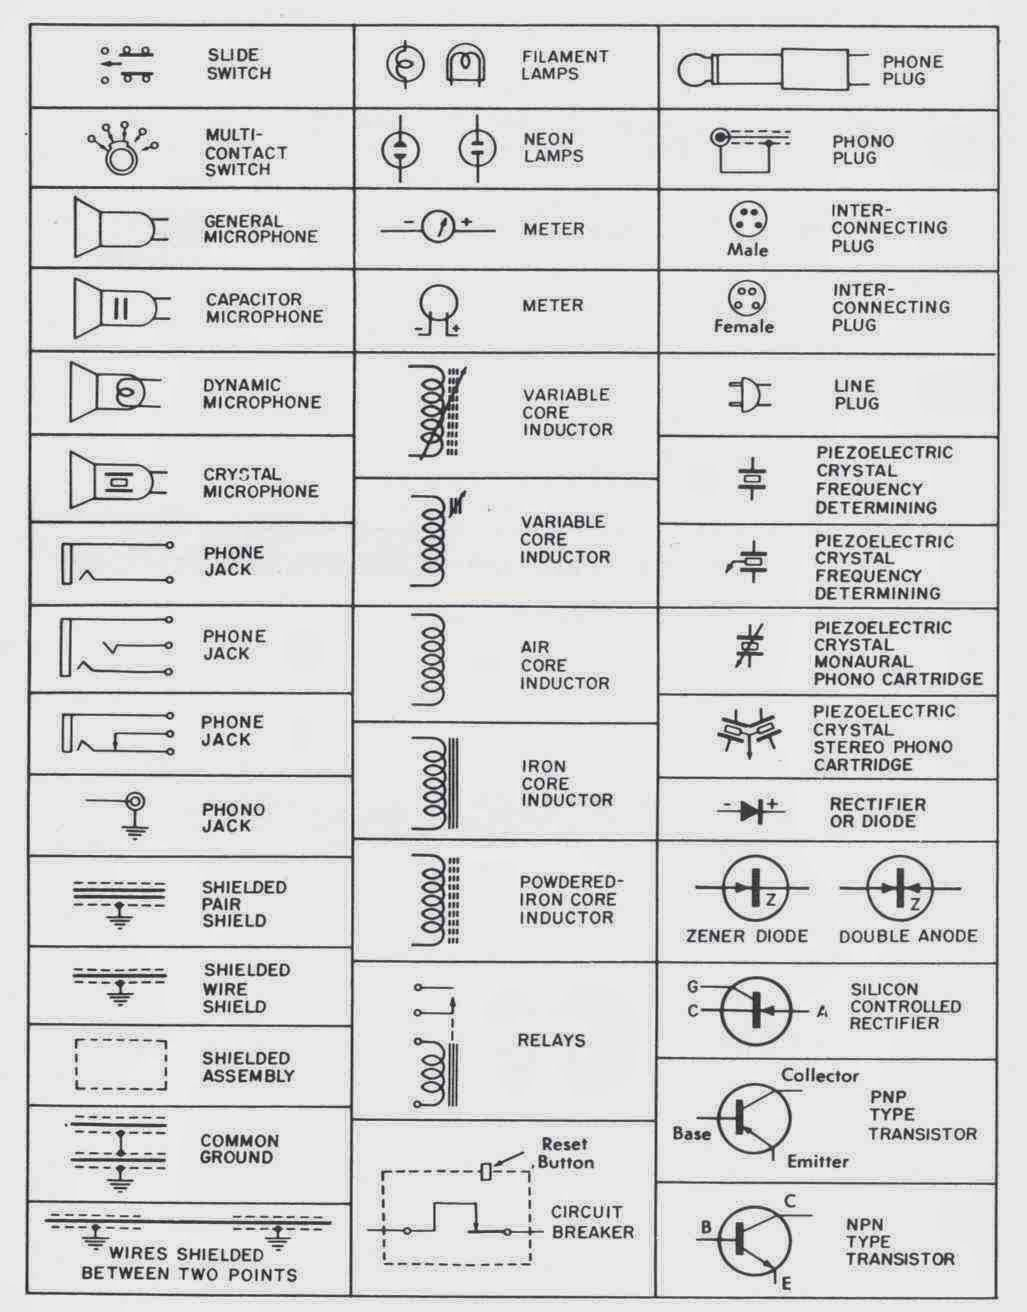 Electrical Symbols 11 ~ Electrical Engineering Pics (With